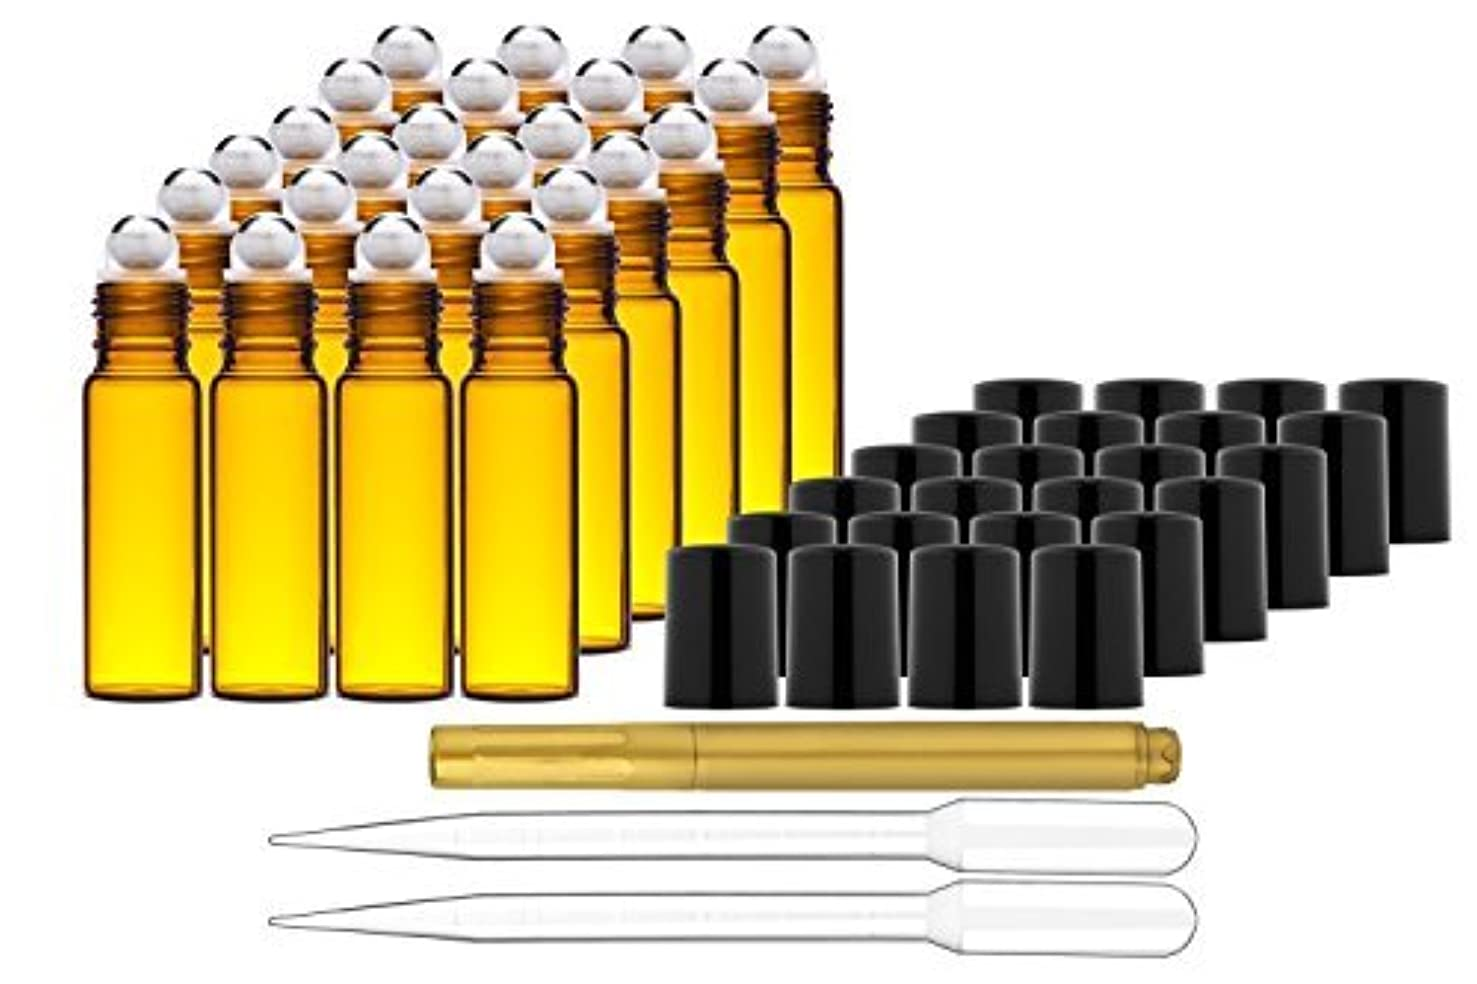 動的足音予防接種するCulinaire 24 Pack Of 10 ml Amber Glass Bottles with Stainless Steel Roller Balls/Caps & (2x) 3 ml Droppers with...